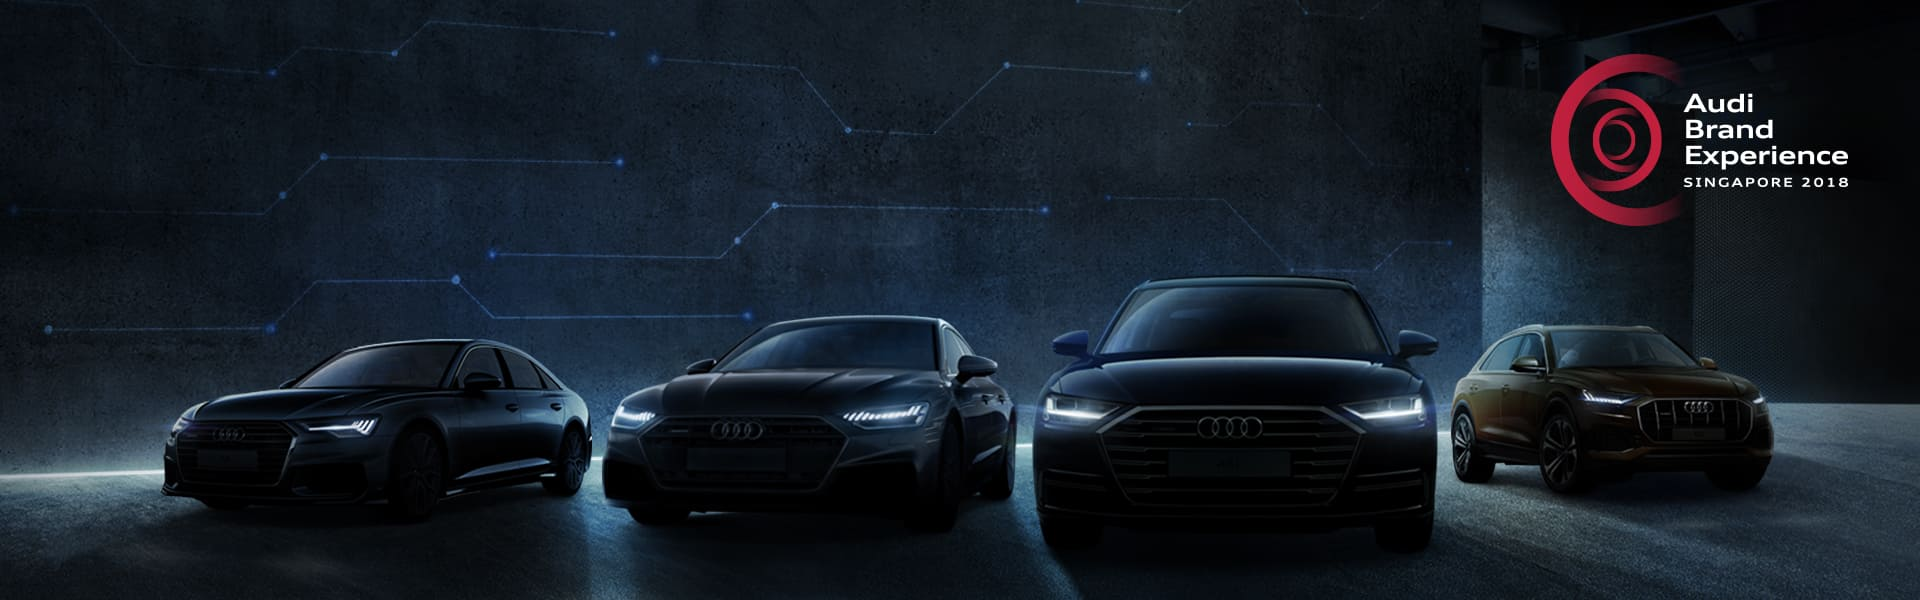 The new Audi A8.